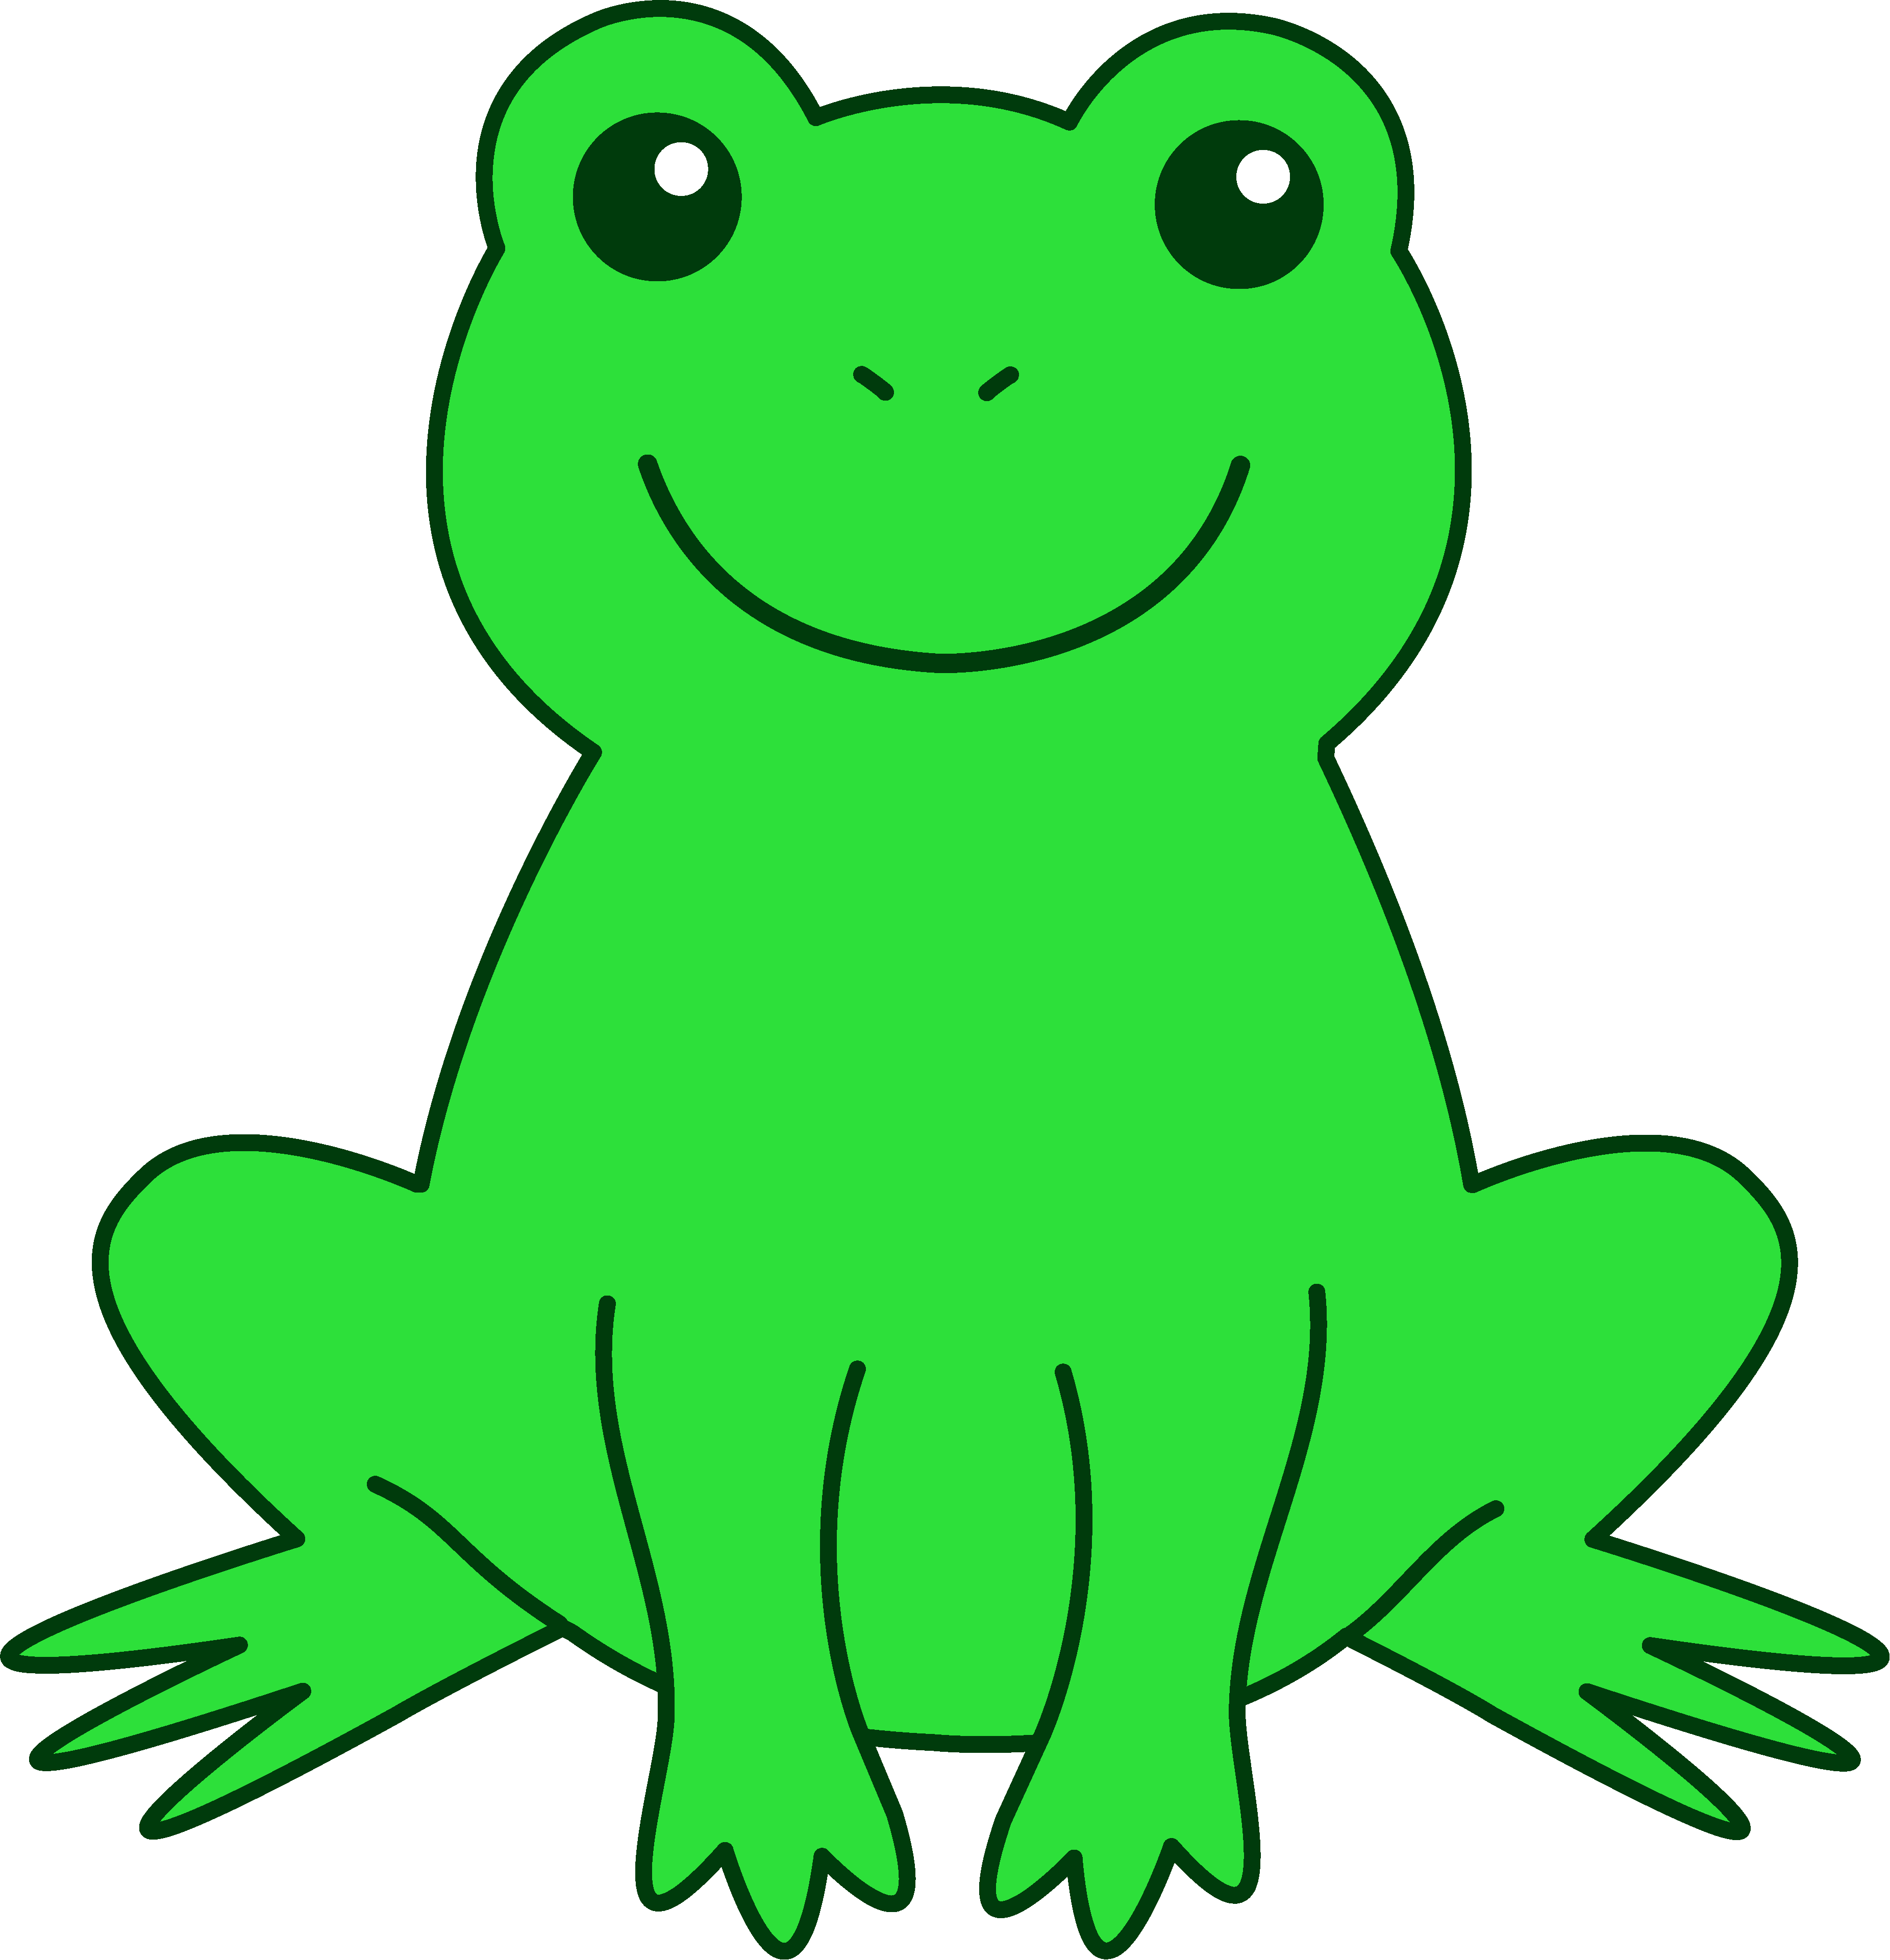 Frog clipart sign. Cute group animated tznemqkc